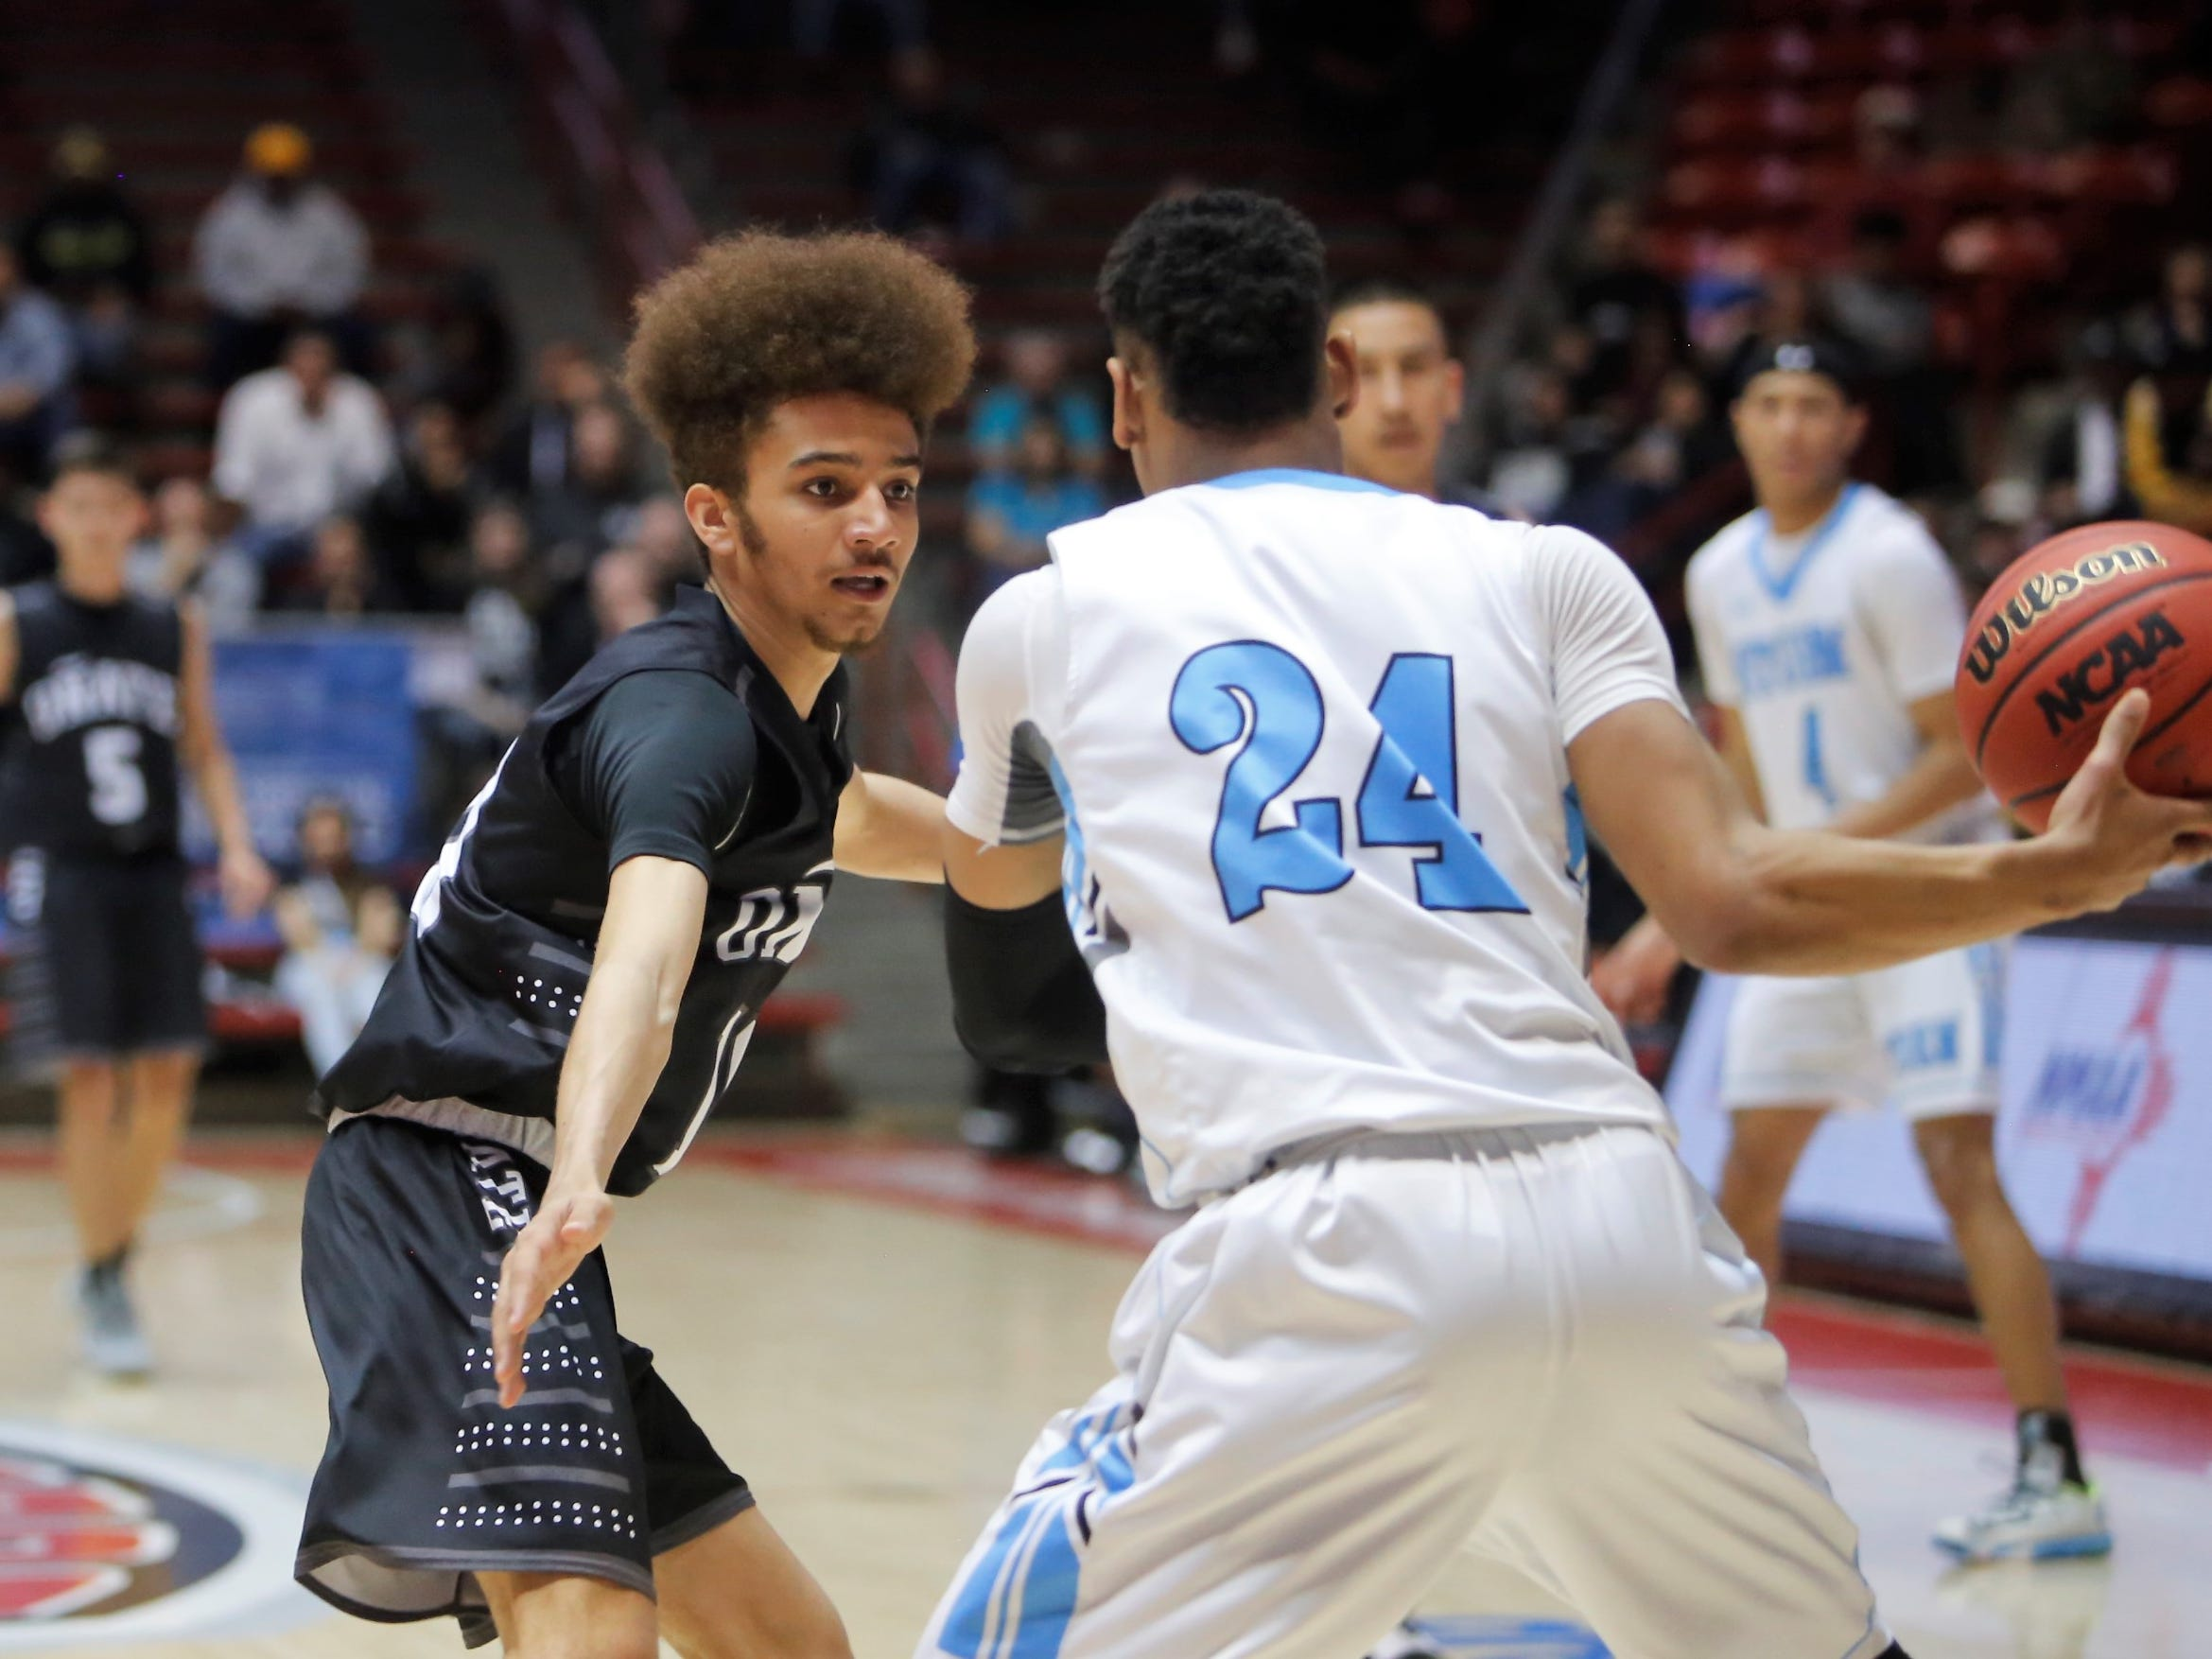 Oñate's Derek Silva looks to get a defensive stop against Cleveland's Aamer Muhammad during Wednesday's 5A state quarterfinals at Dreamstyle Arena in Albuquerque.